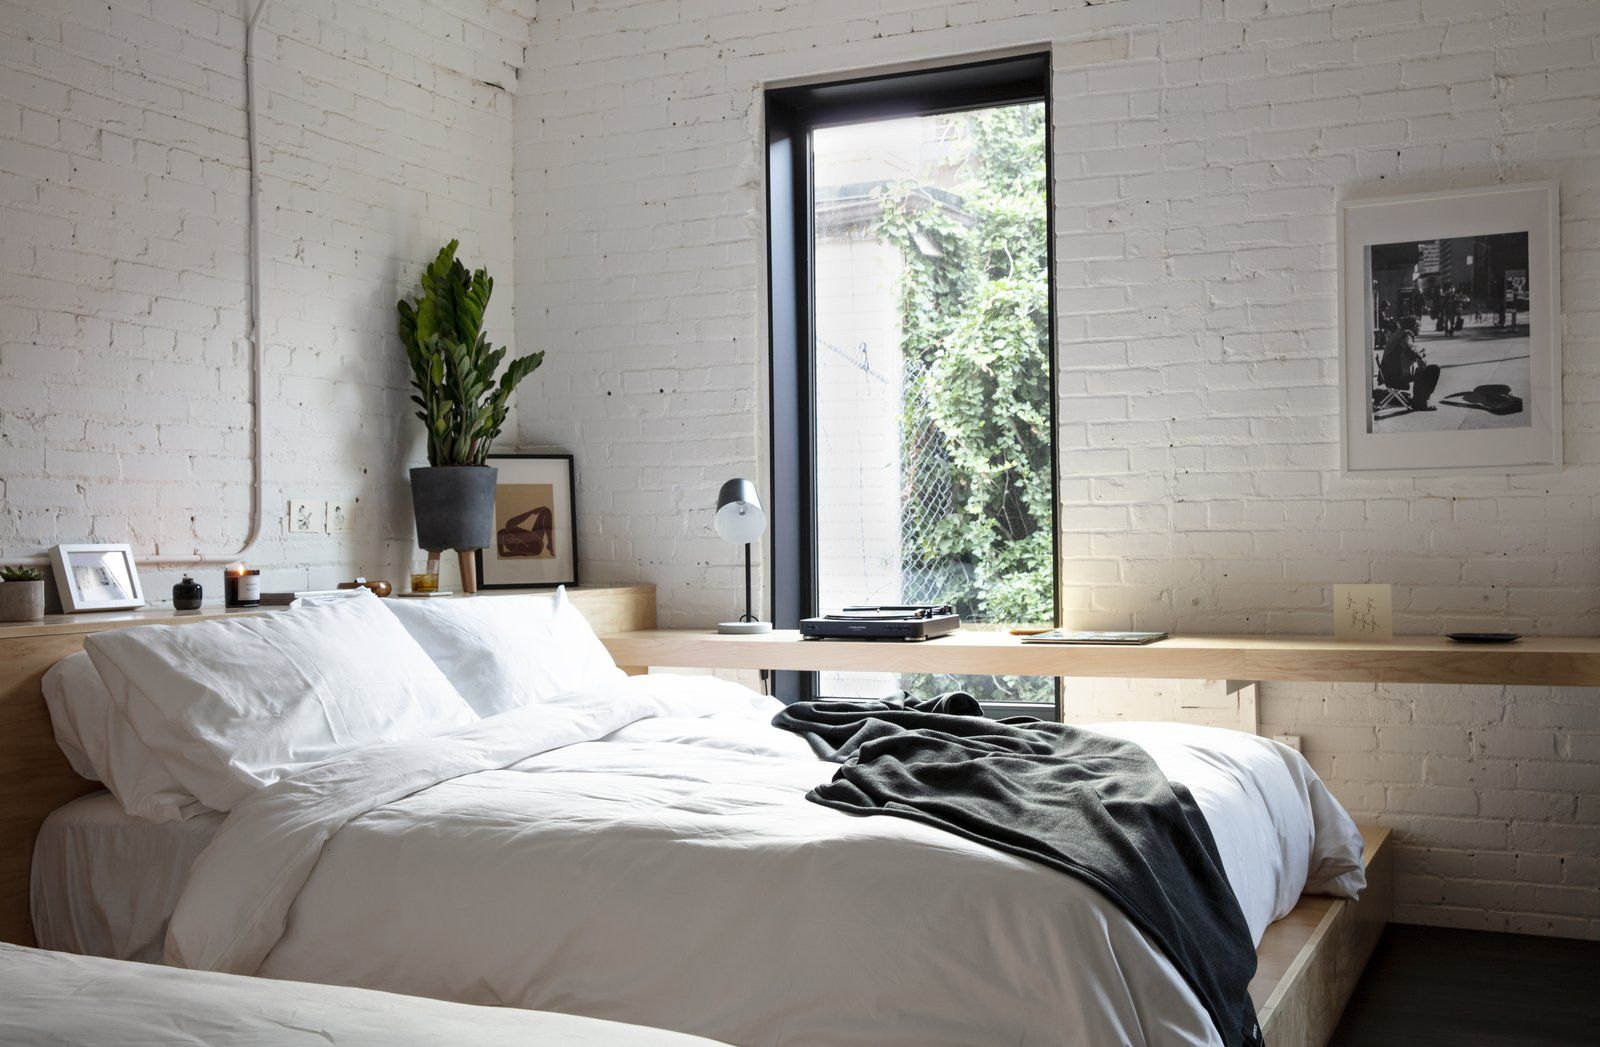 Photo 8 Of 15 In Old Horse Stables Now Host An Experimental Hotel In Bedroom Interior Home Room